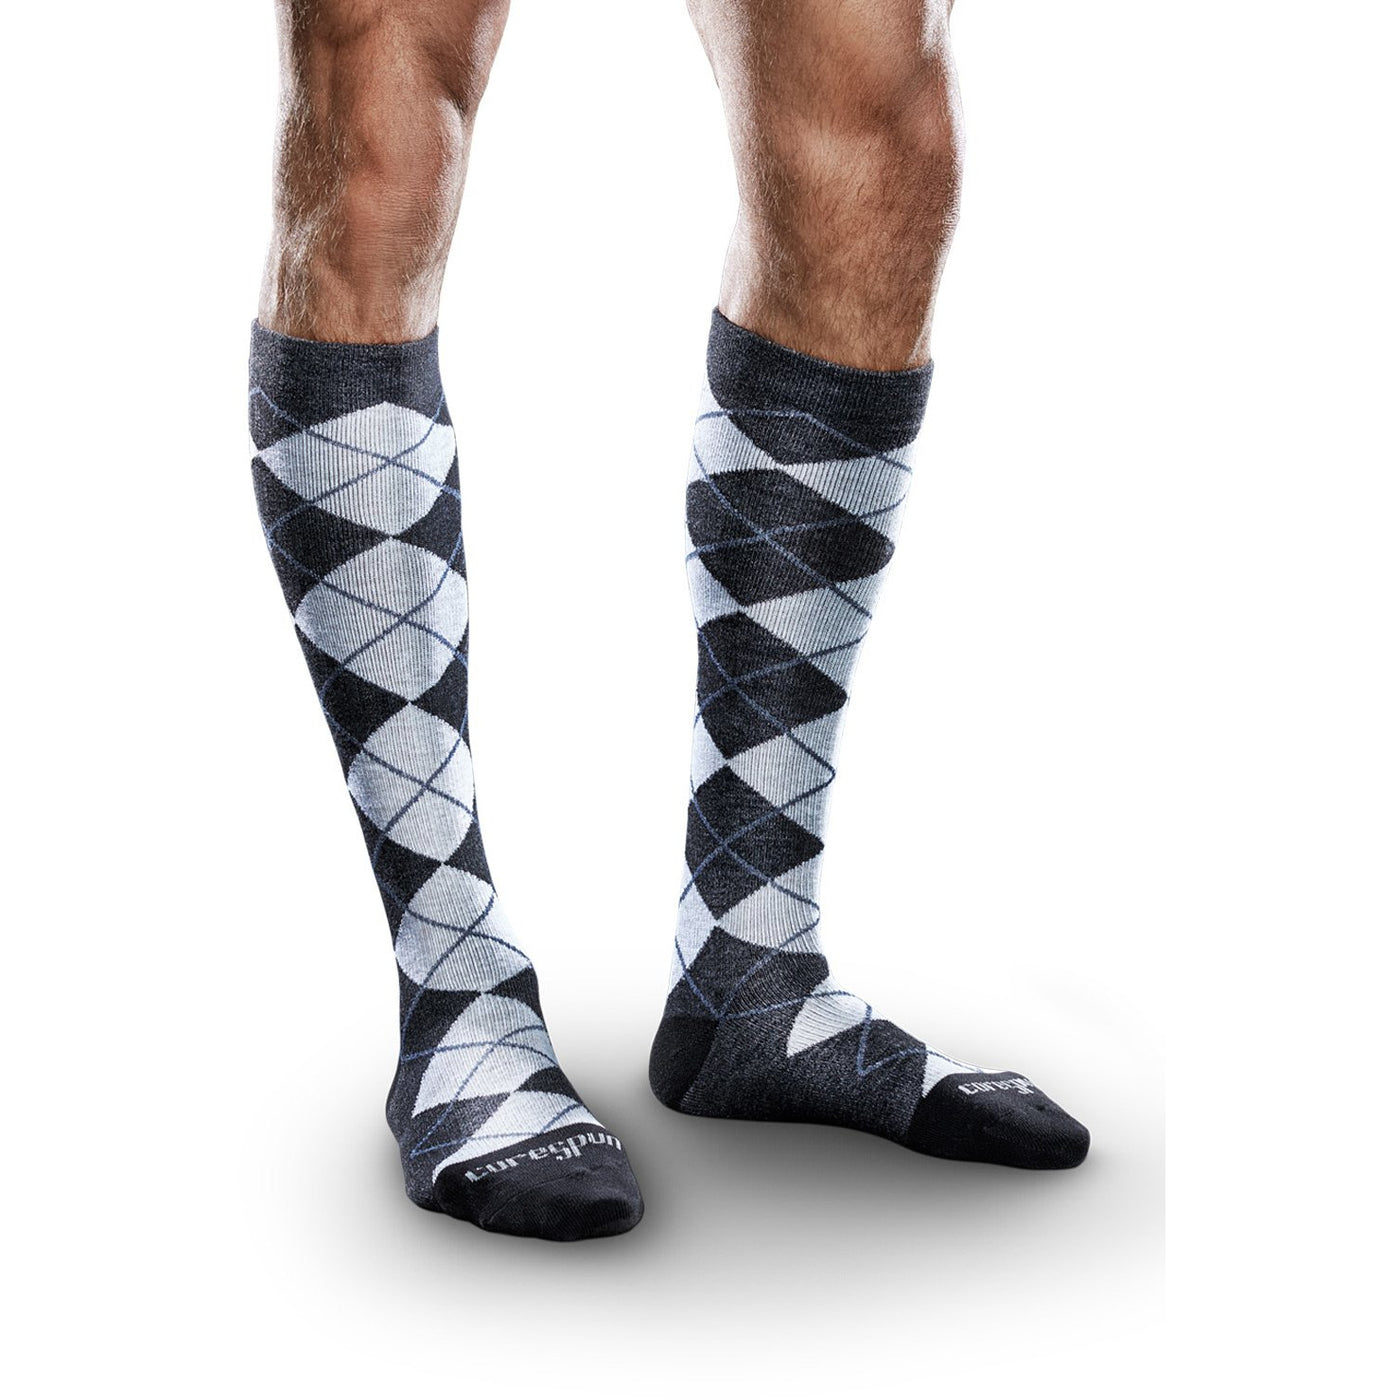 98b657676d Therafirm Core-Spun Argyle Compression Socks 10-15 mmHg for Men and ...